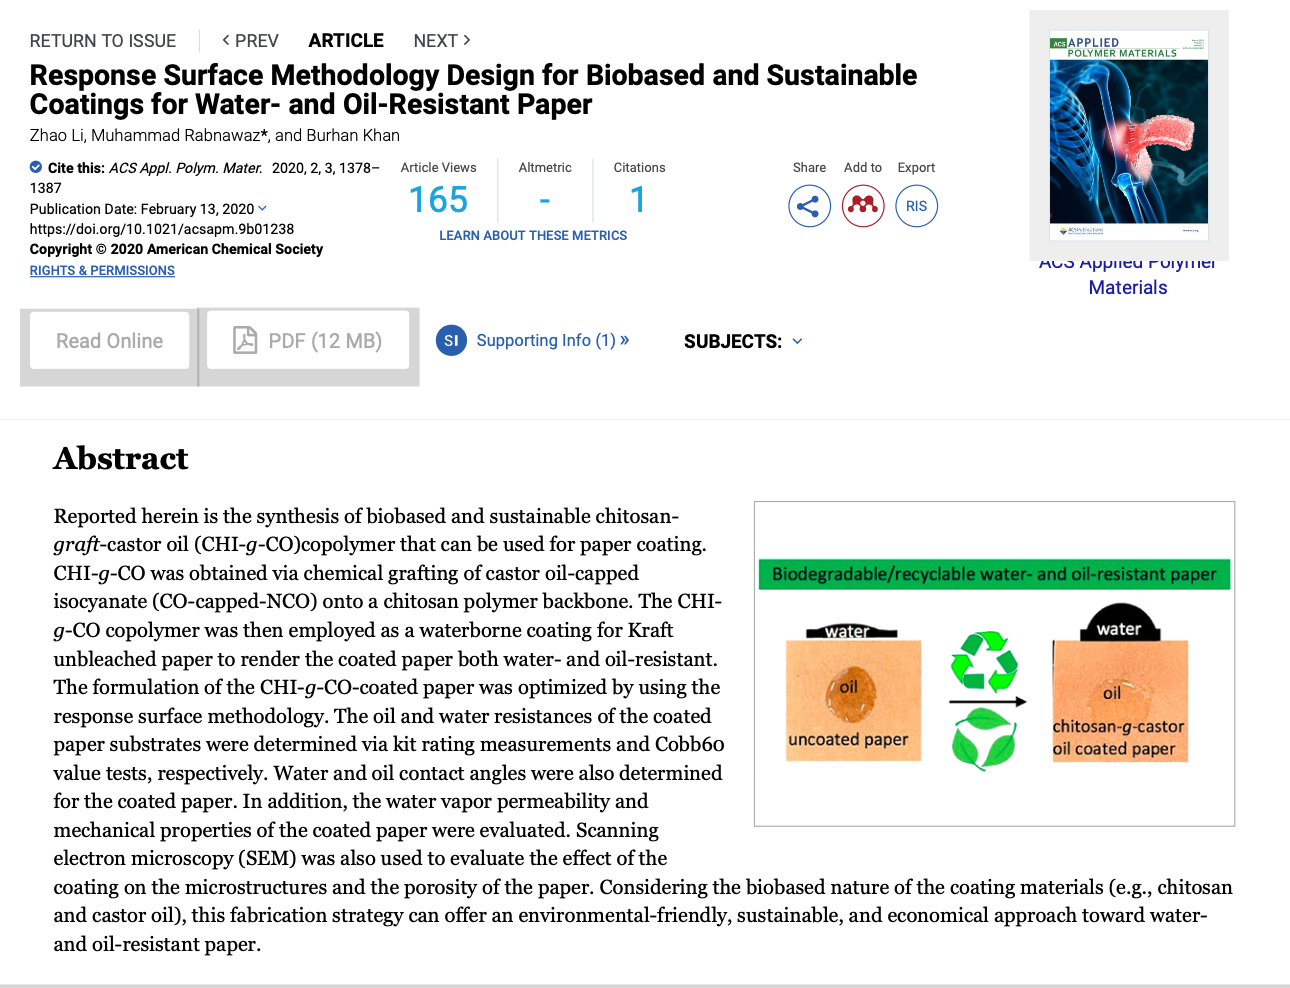 Response Surface Methodology Design for Biobased and Sustainable Coatings for Water- and Oil-Resistant Paper